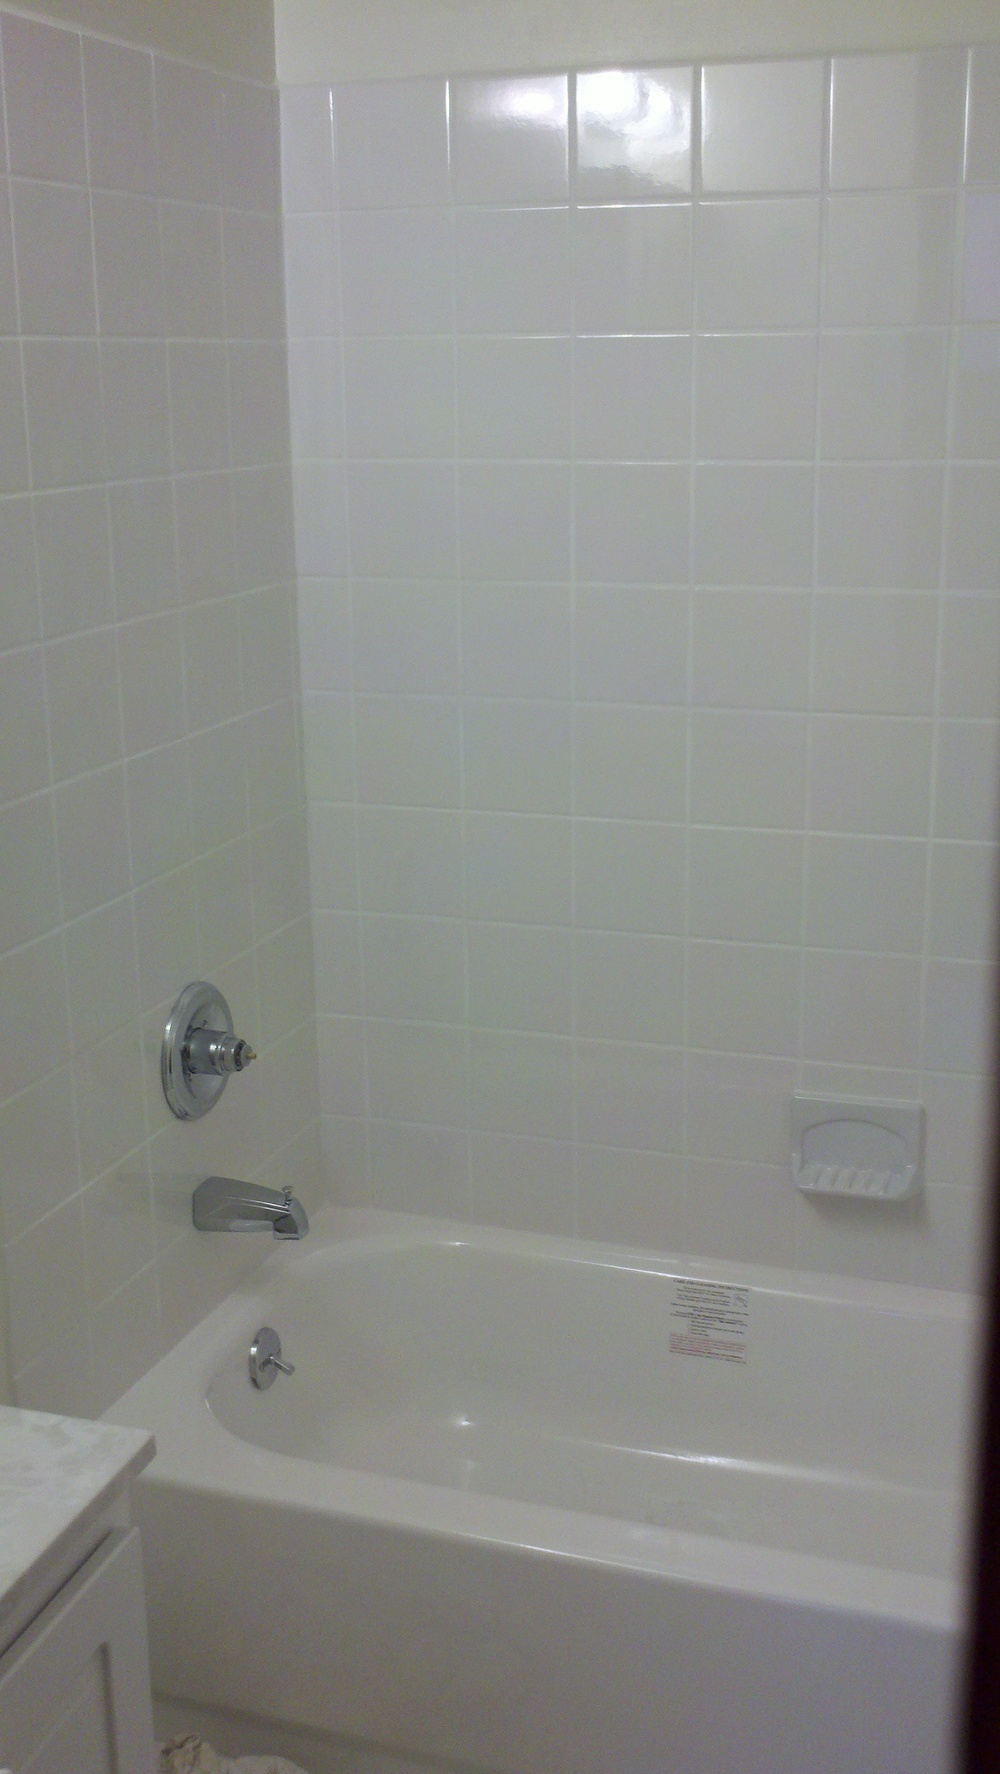 Williamsburg Bathroom Remodel